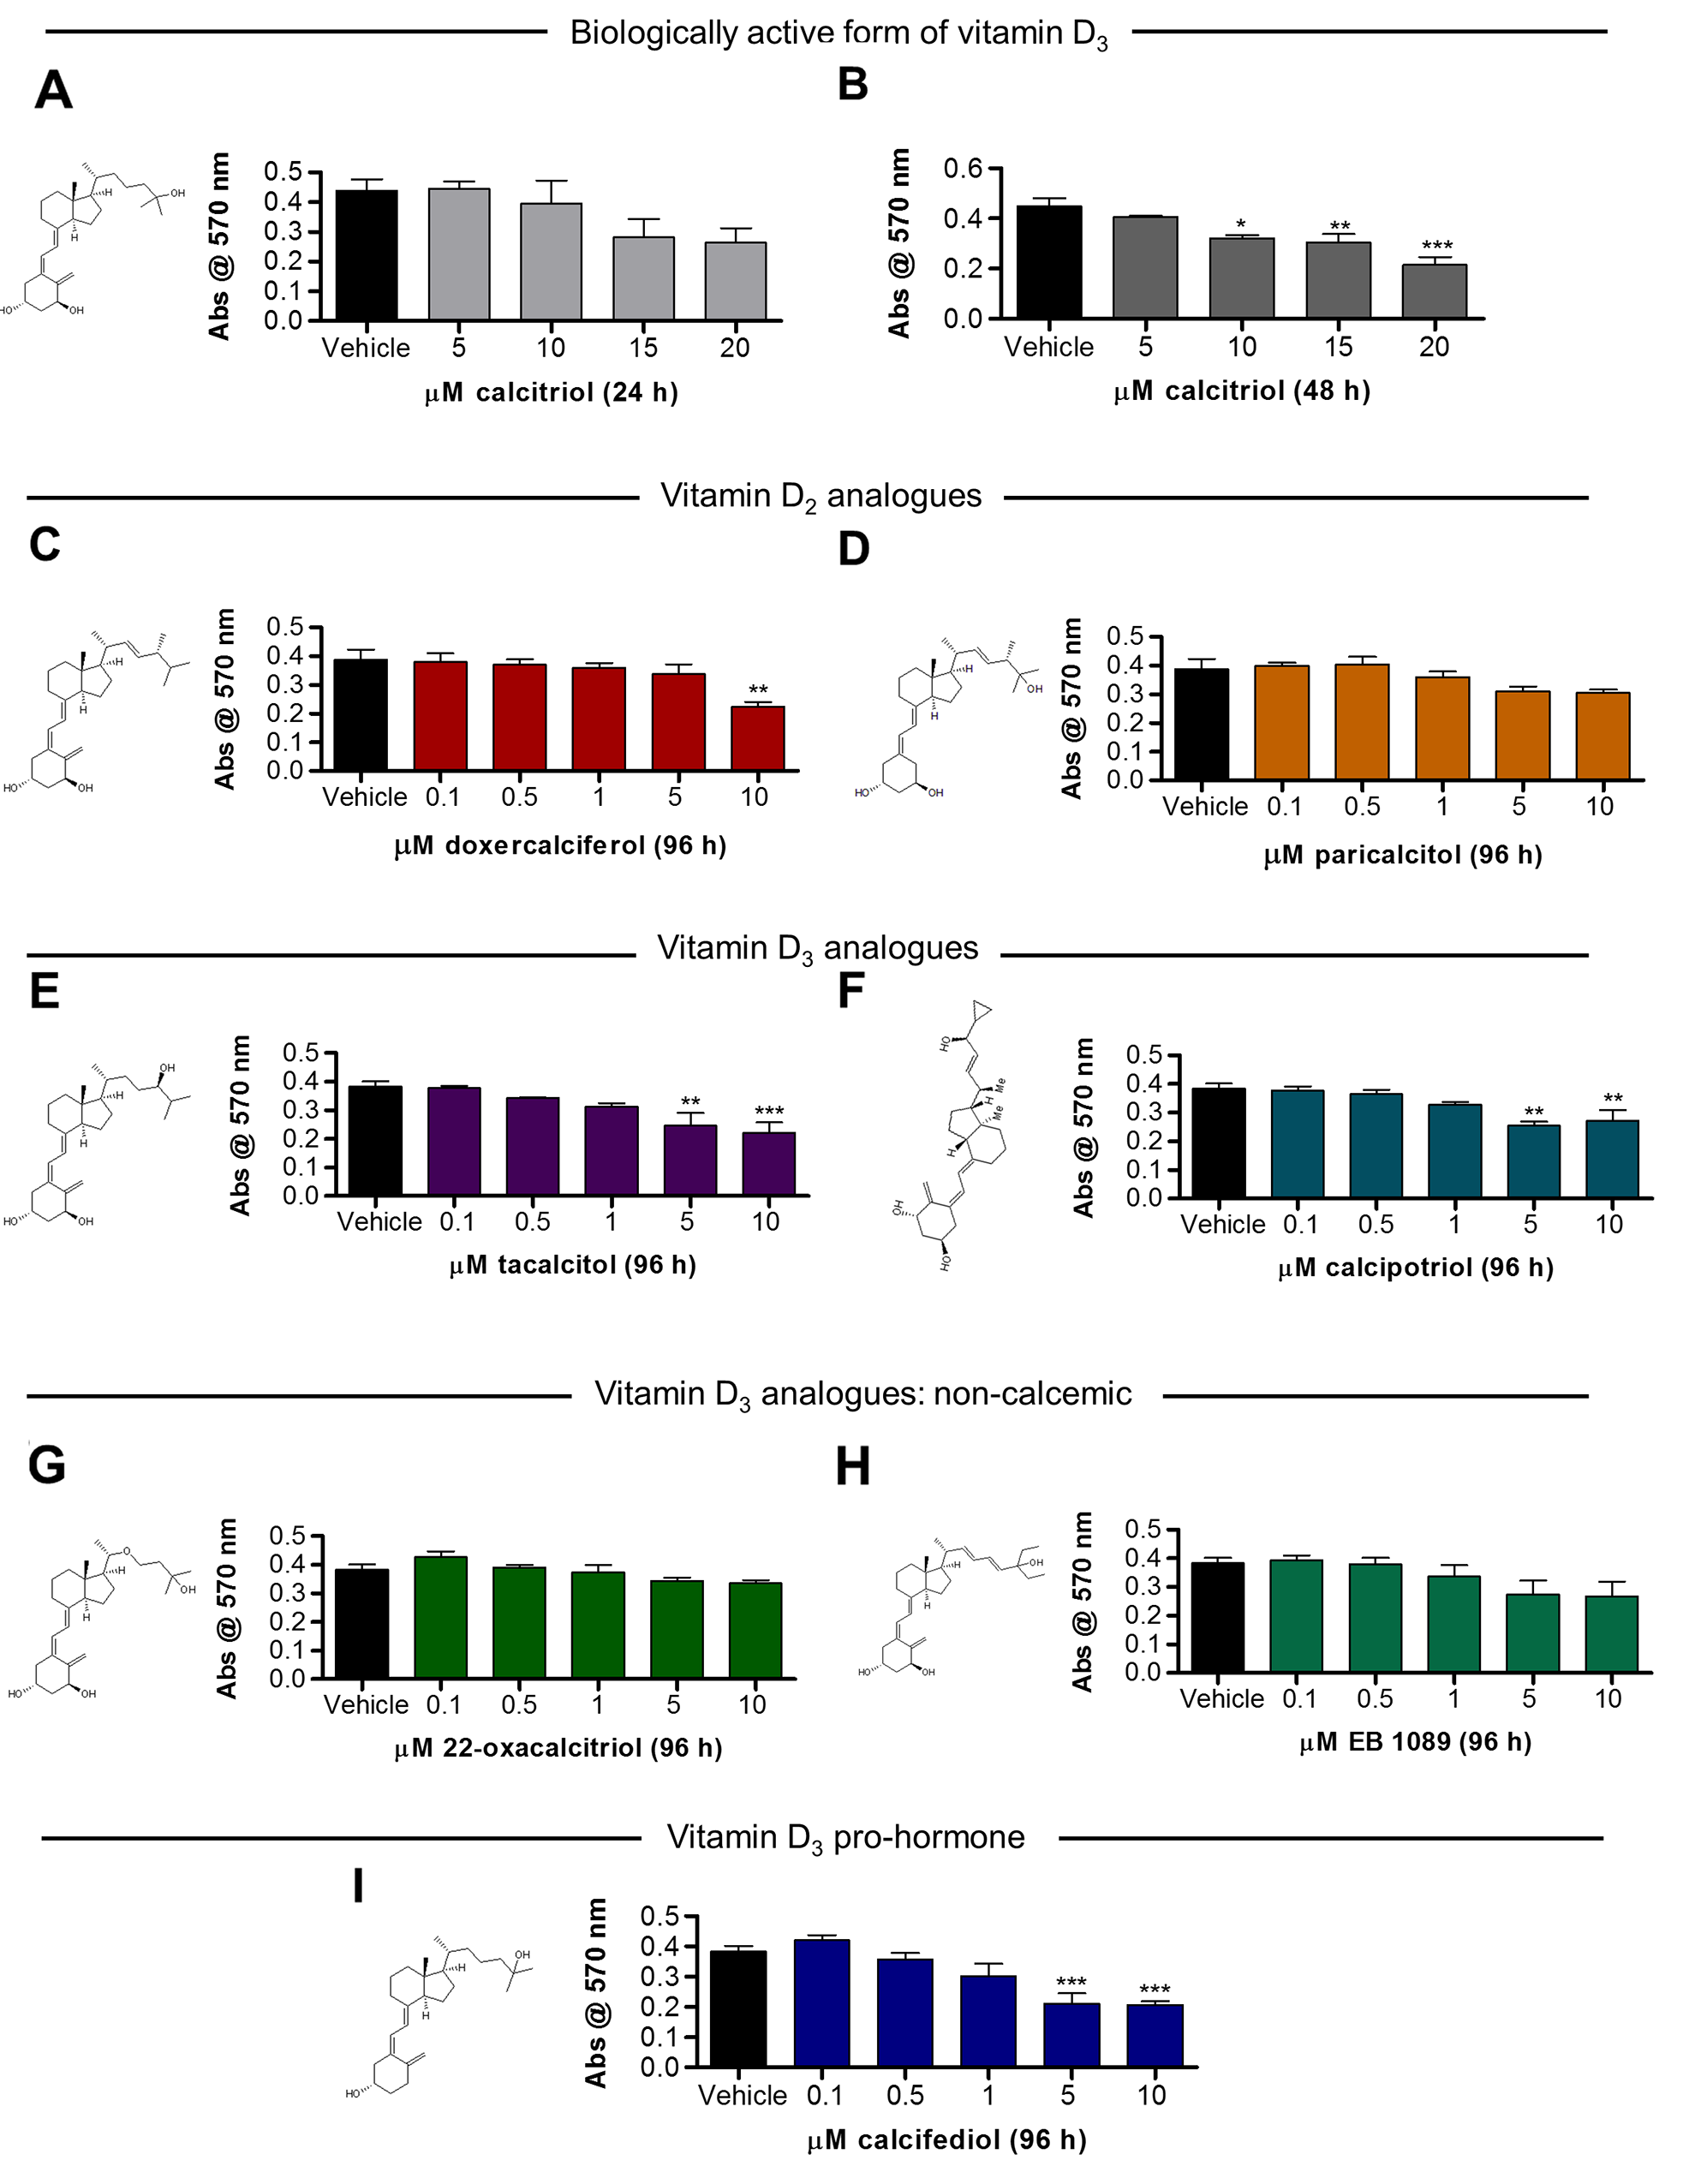 Vitamin D analogues attenuate ARPE-19 cell viability in a and concentration-dependent manner.